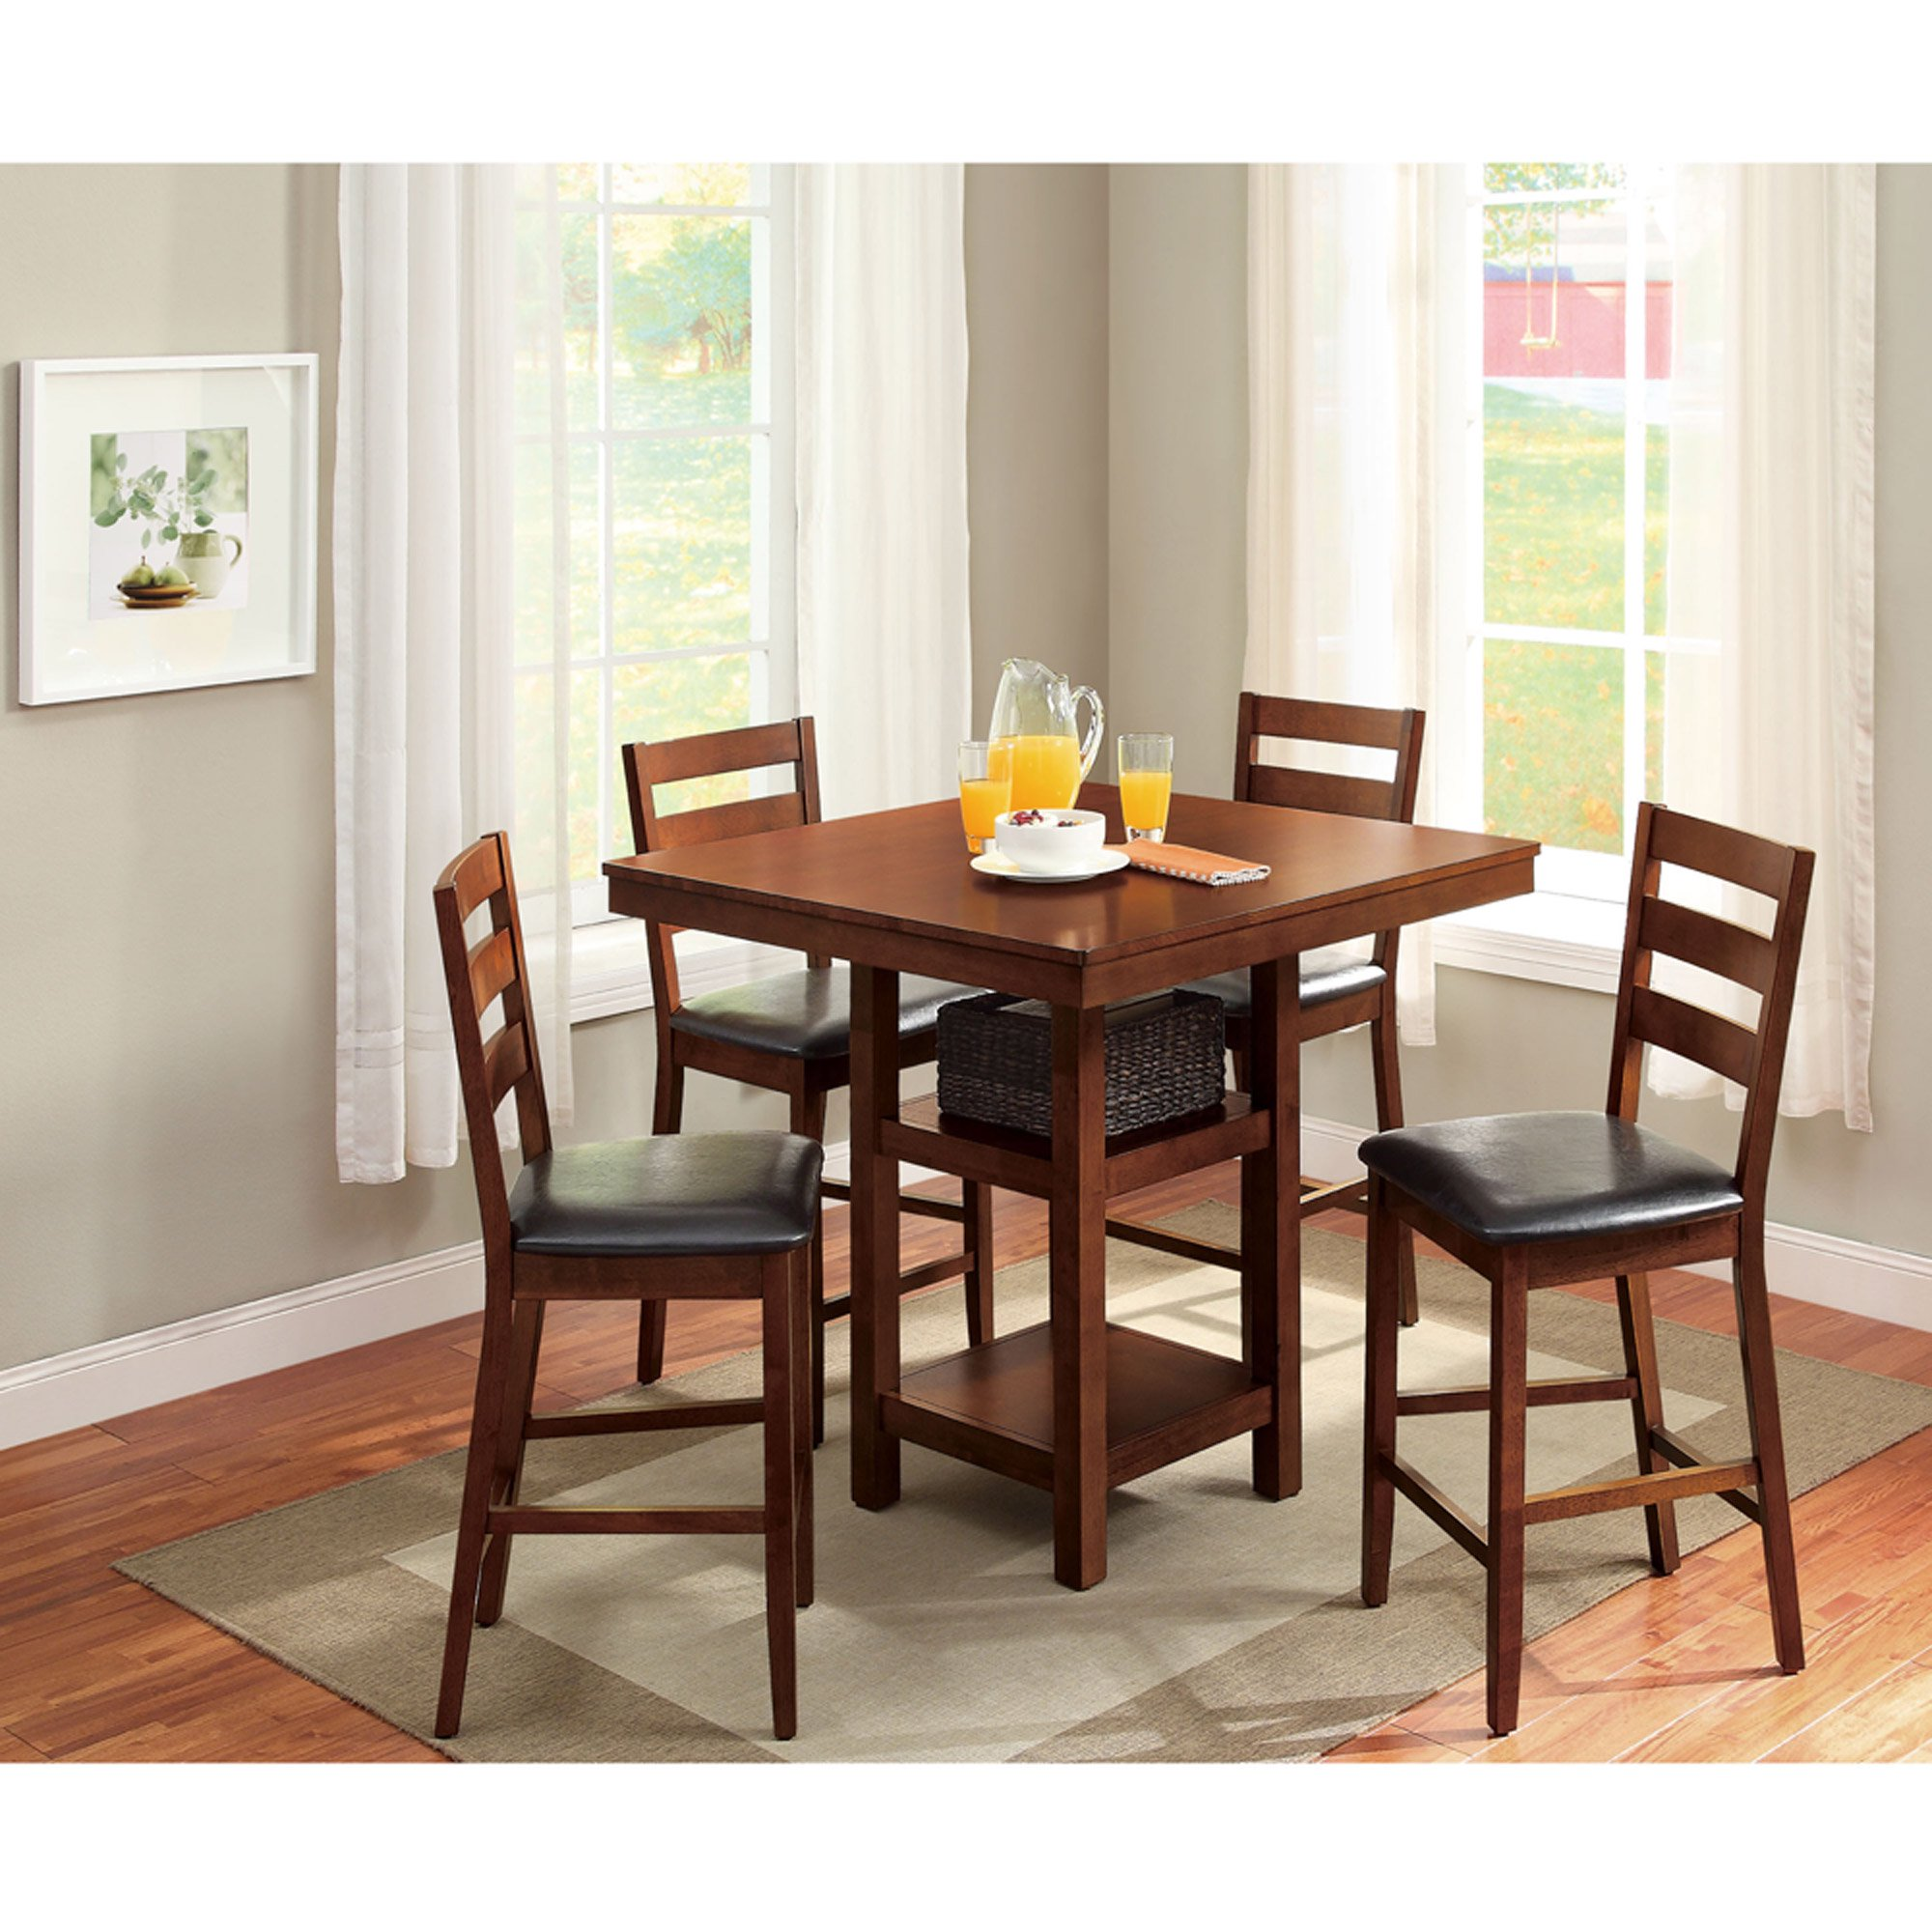 Better Homes \u0026 Gardens Dalton Park 5-Piece Counter Height Dining Set Includes Table  sc 1 st  Walmart & Better Homes \u0026 Gardens Dalton Park 5-Piece Counter Height Dining Set ...